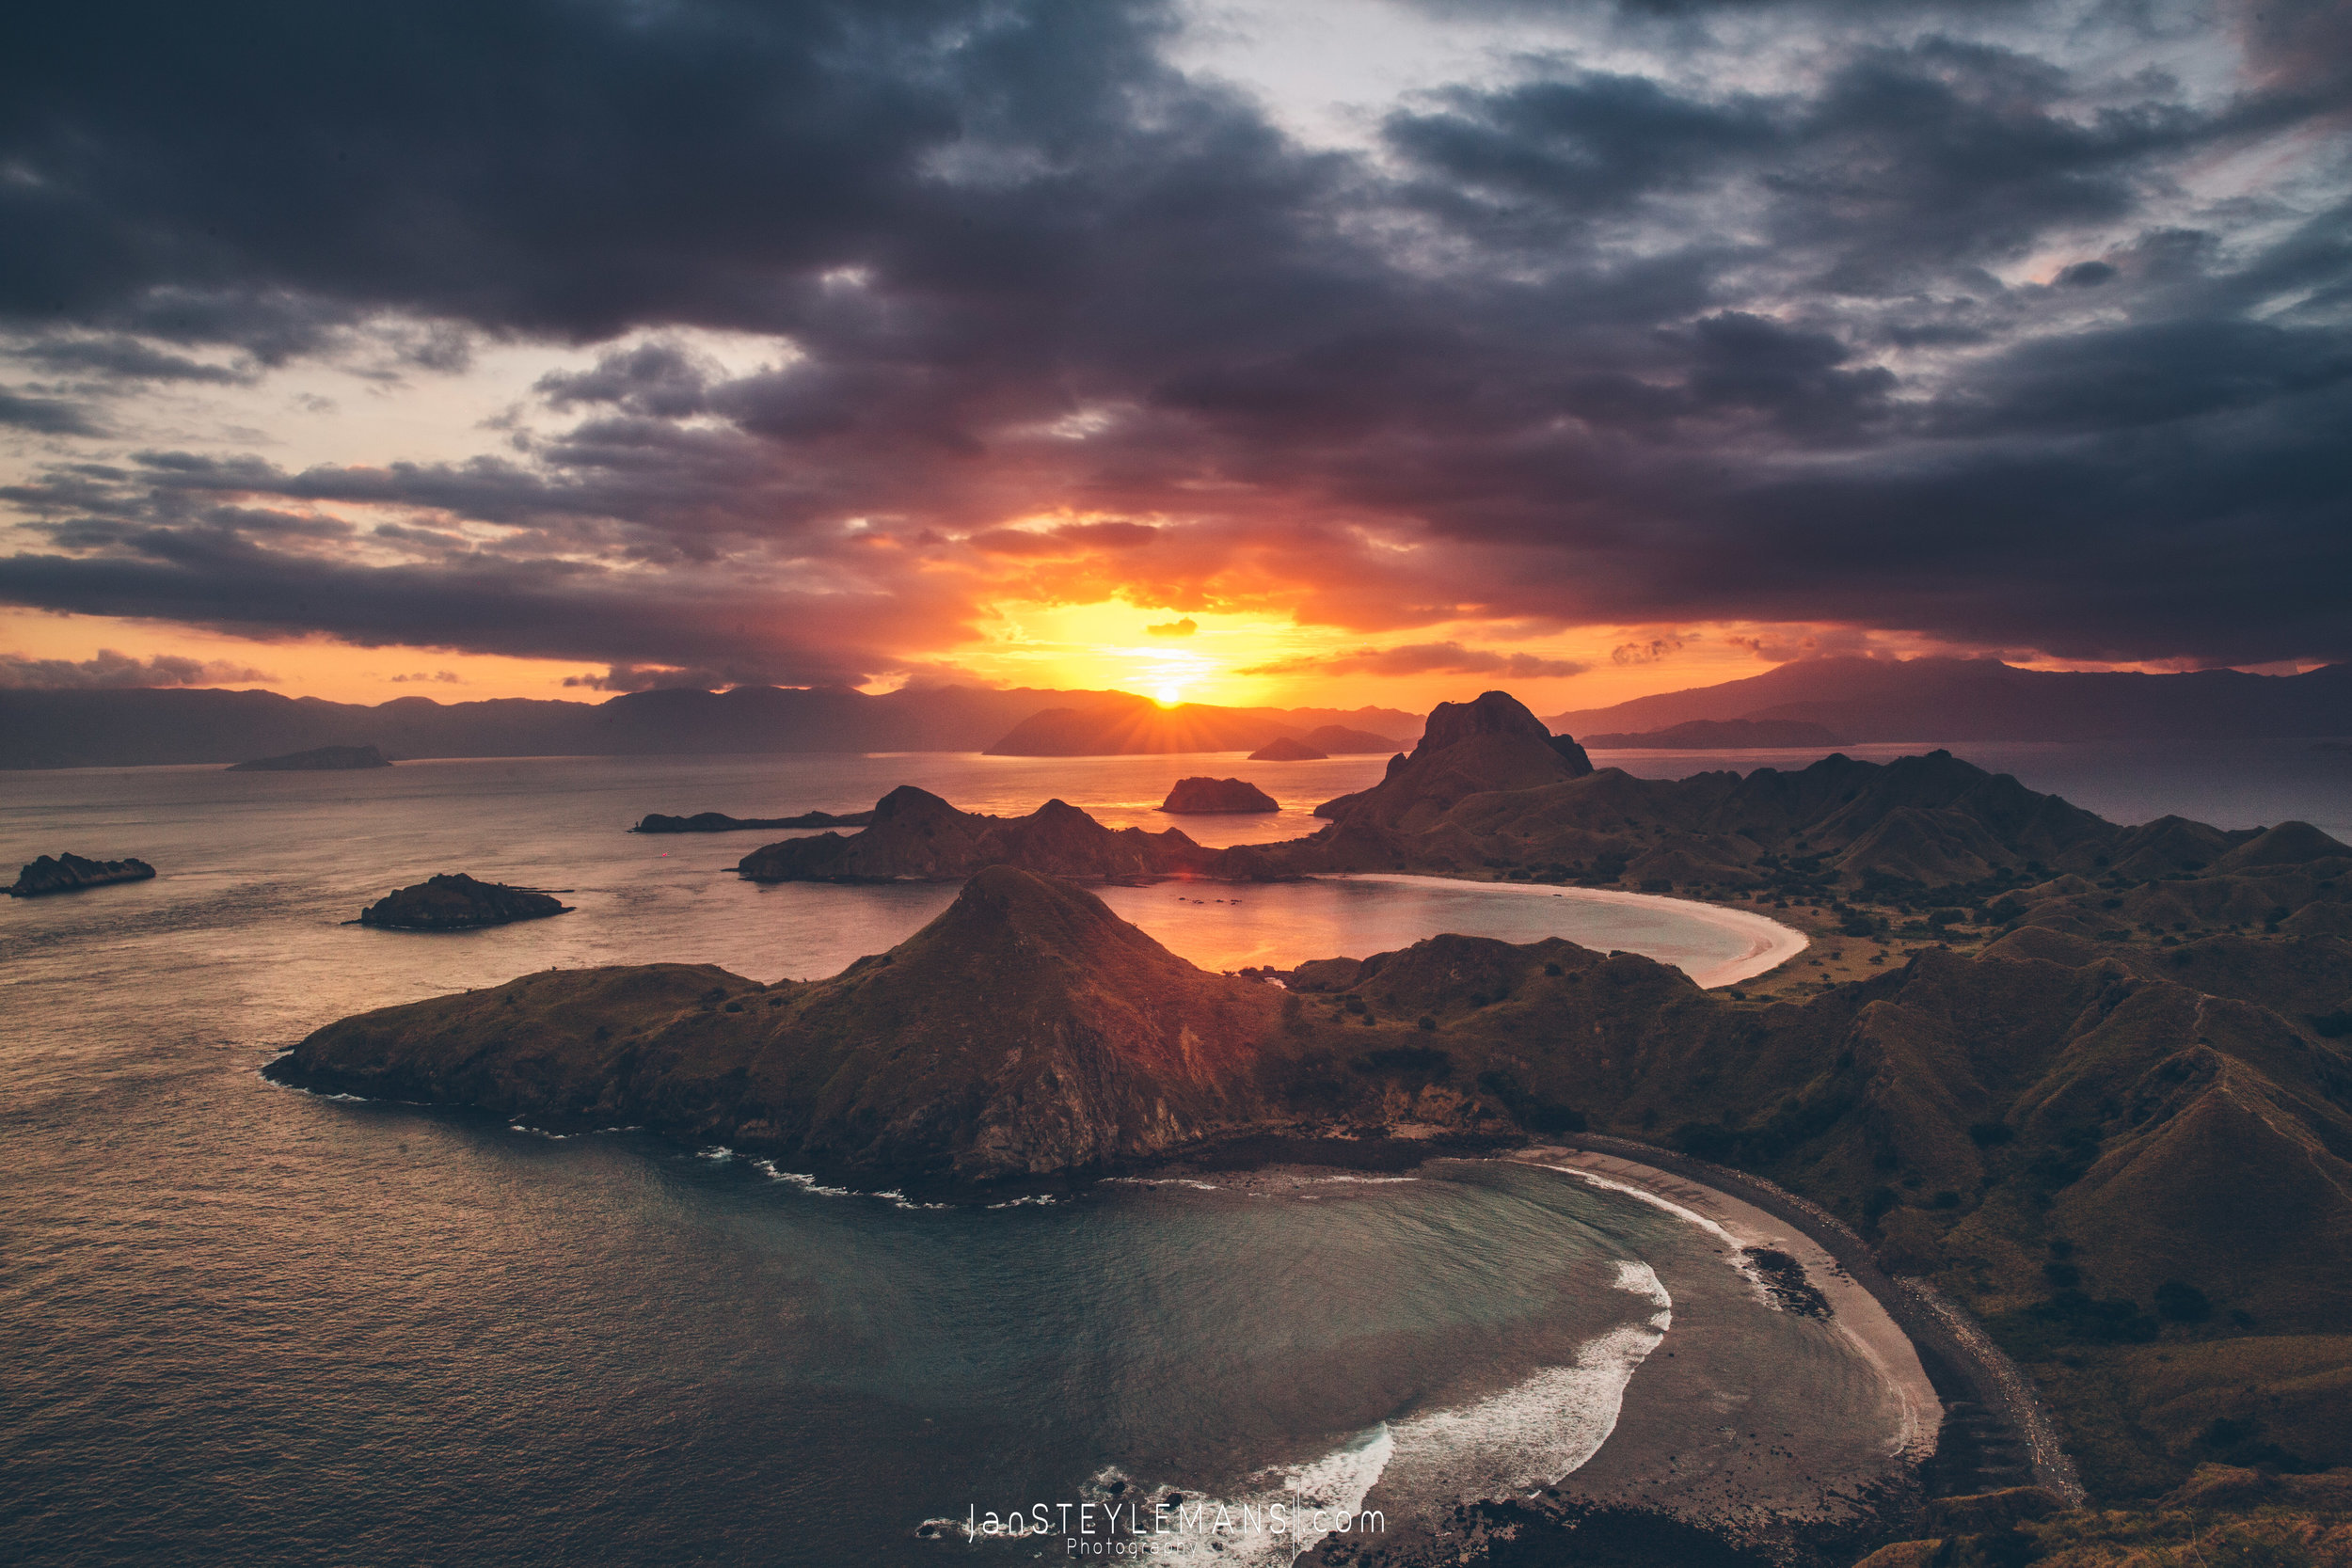 30. Sunset at Padar, Komodo National Park, Indonesia